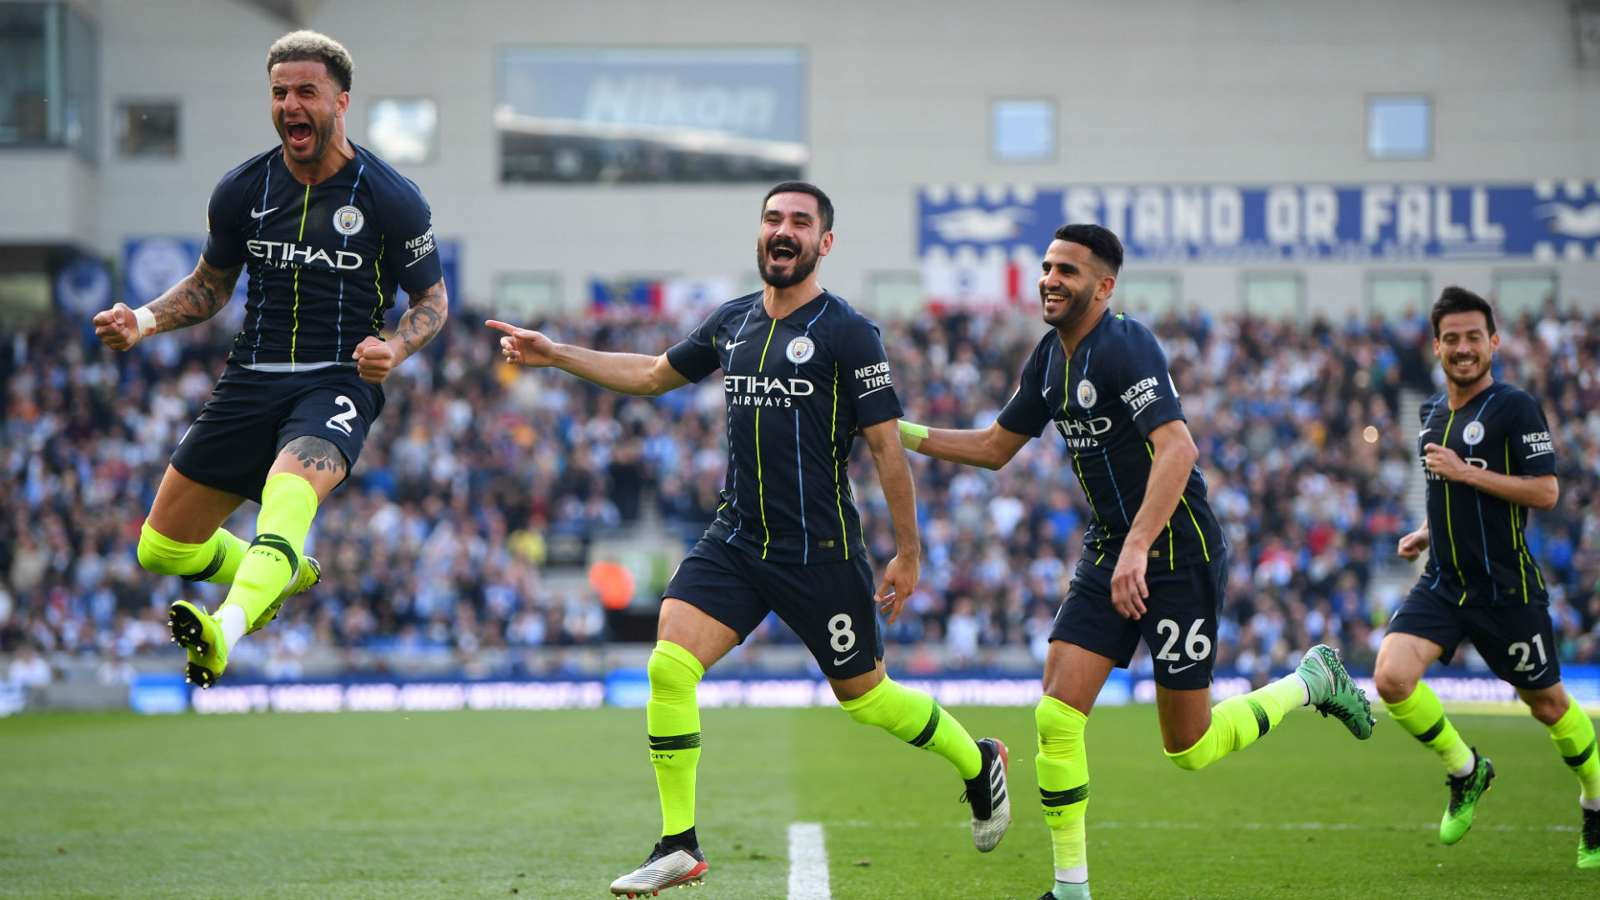 Guardiola's men storm to back-to-back titles